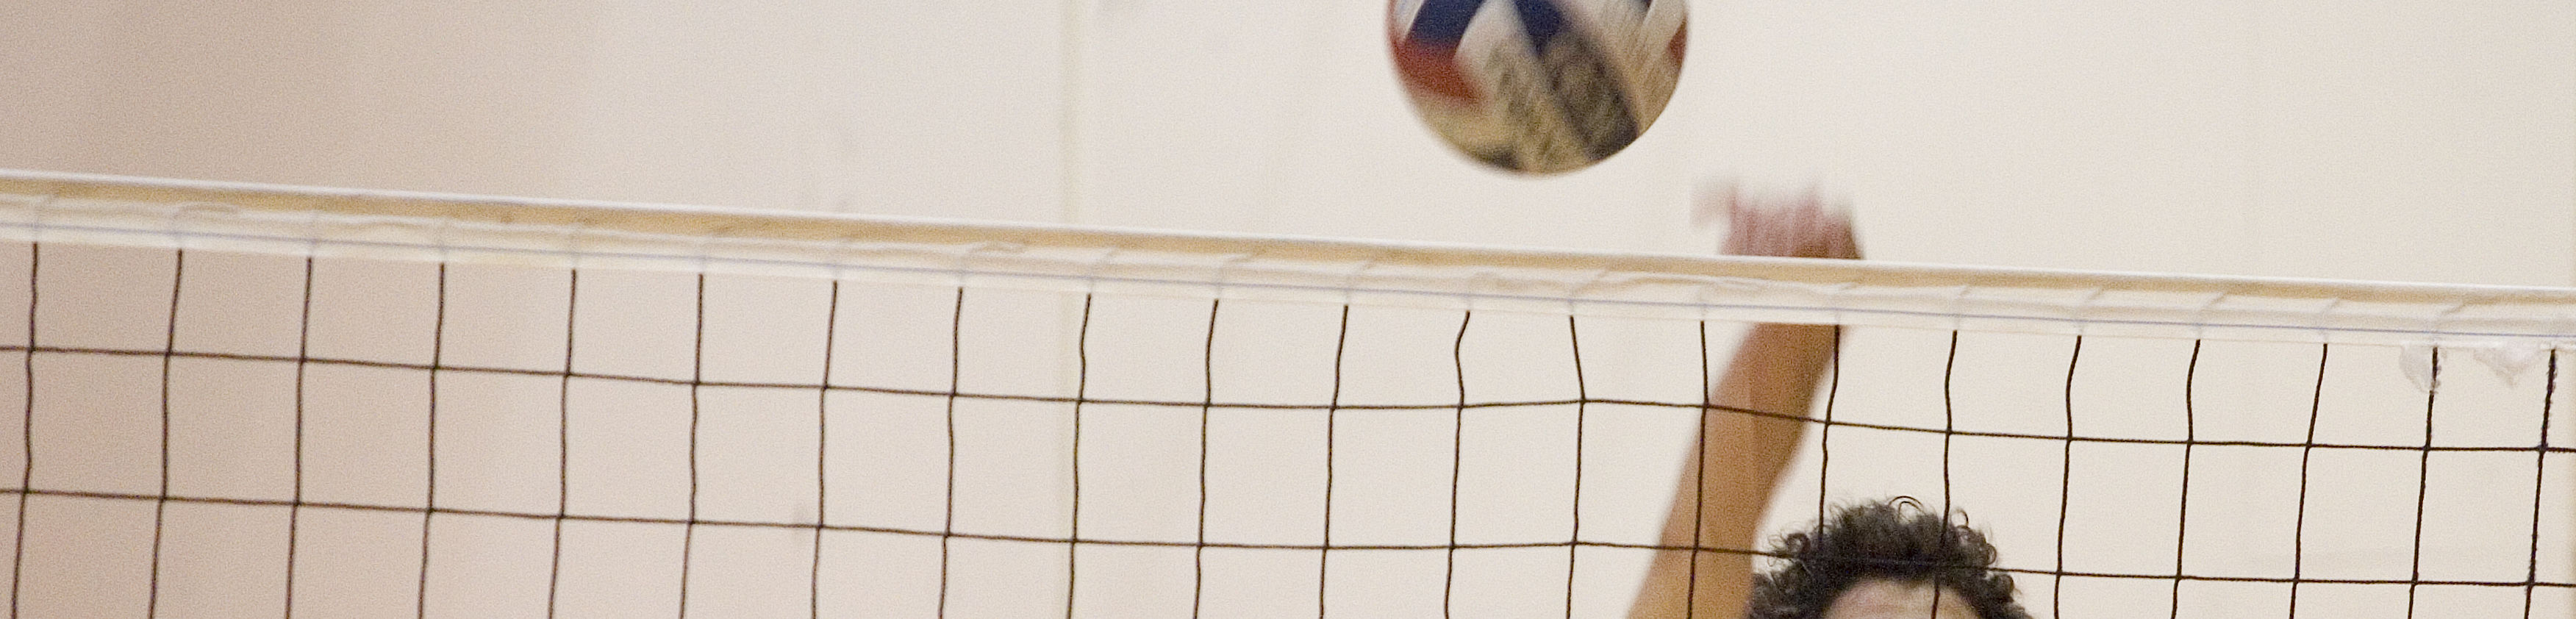 A volleyball participant hitting a volleyball over the net.